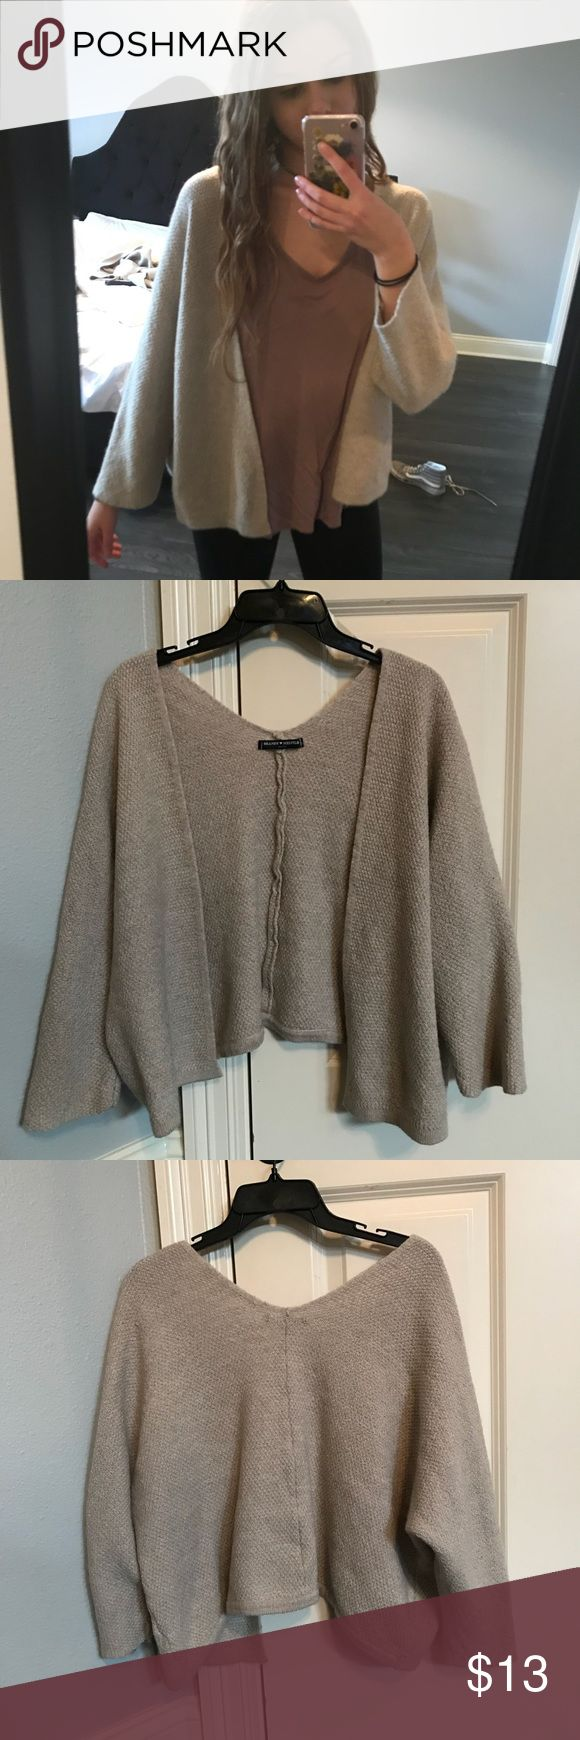 Brandy Melville Cardigan Good condition. Barely worn. Never wear. Wool material. Brandy Melville Sweaters Cardigans